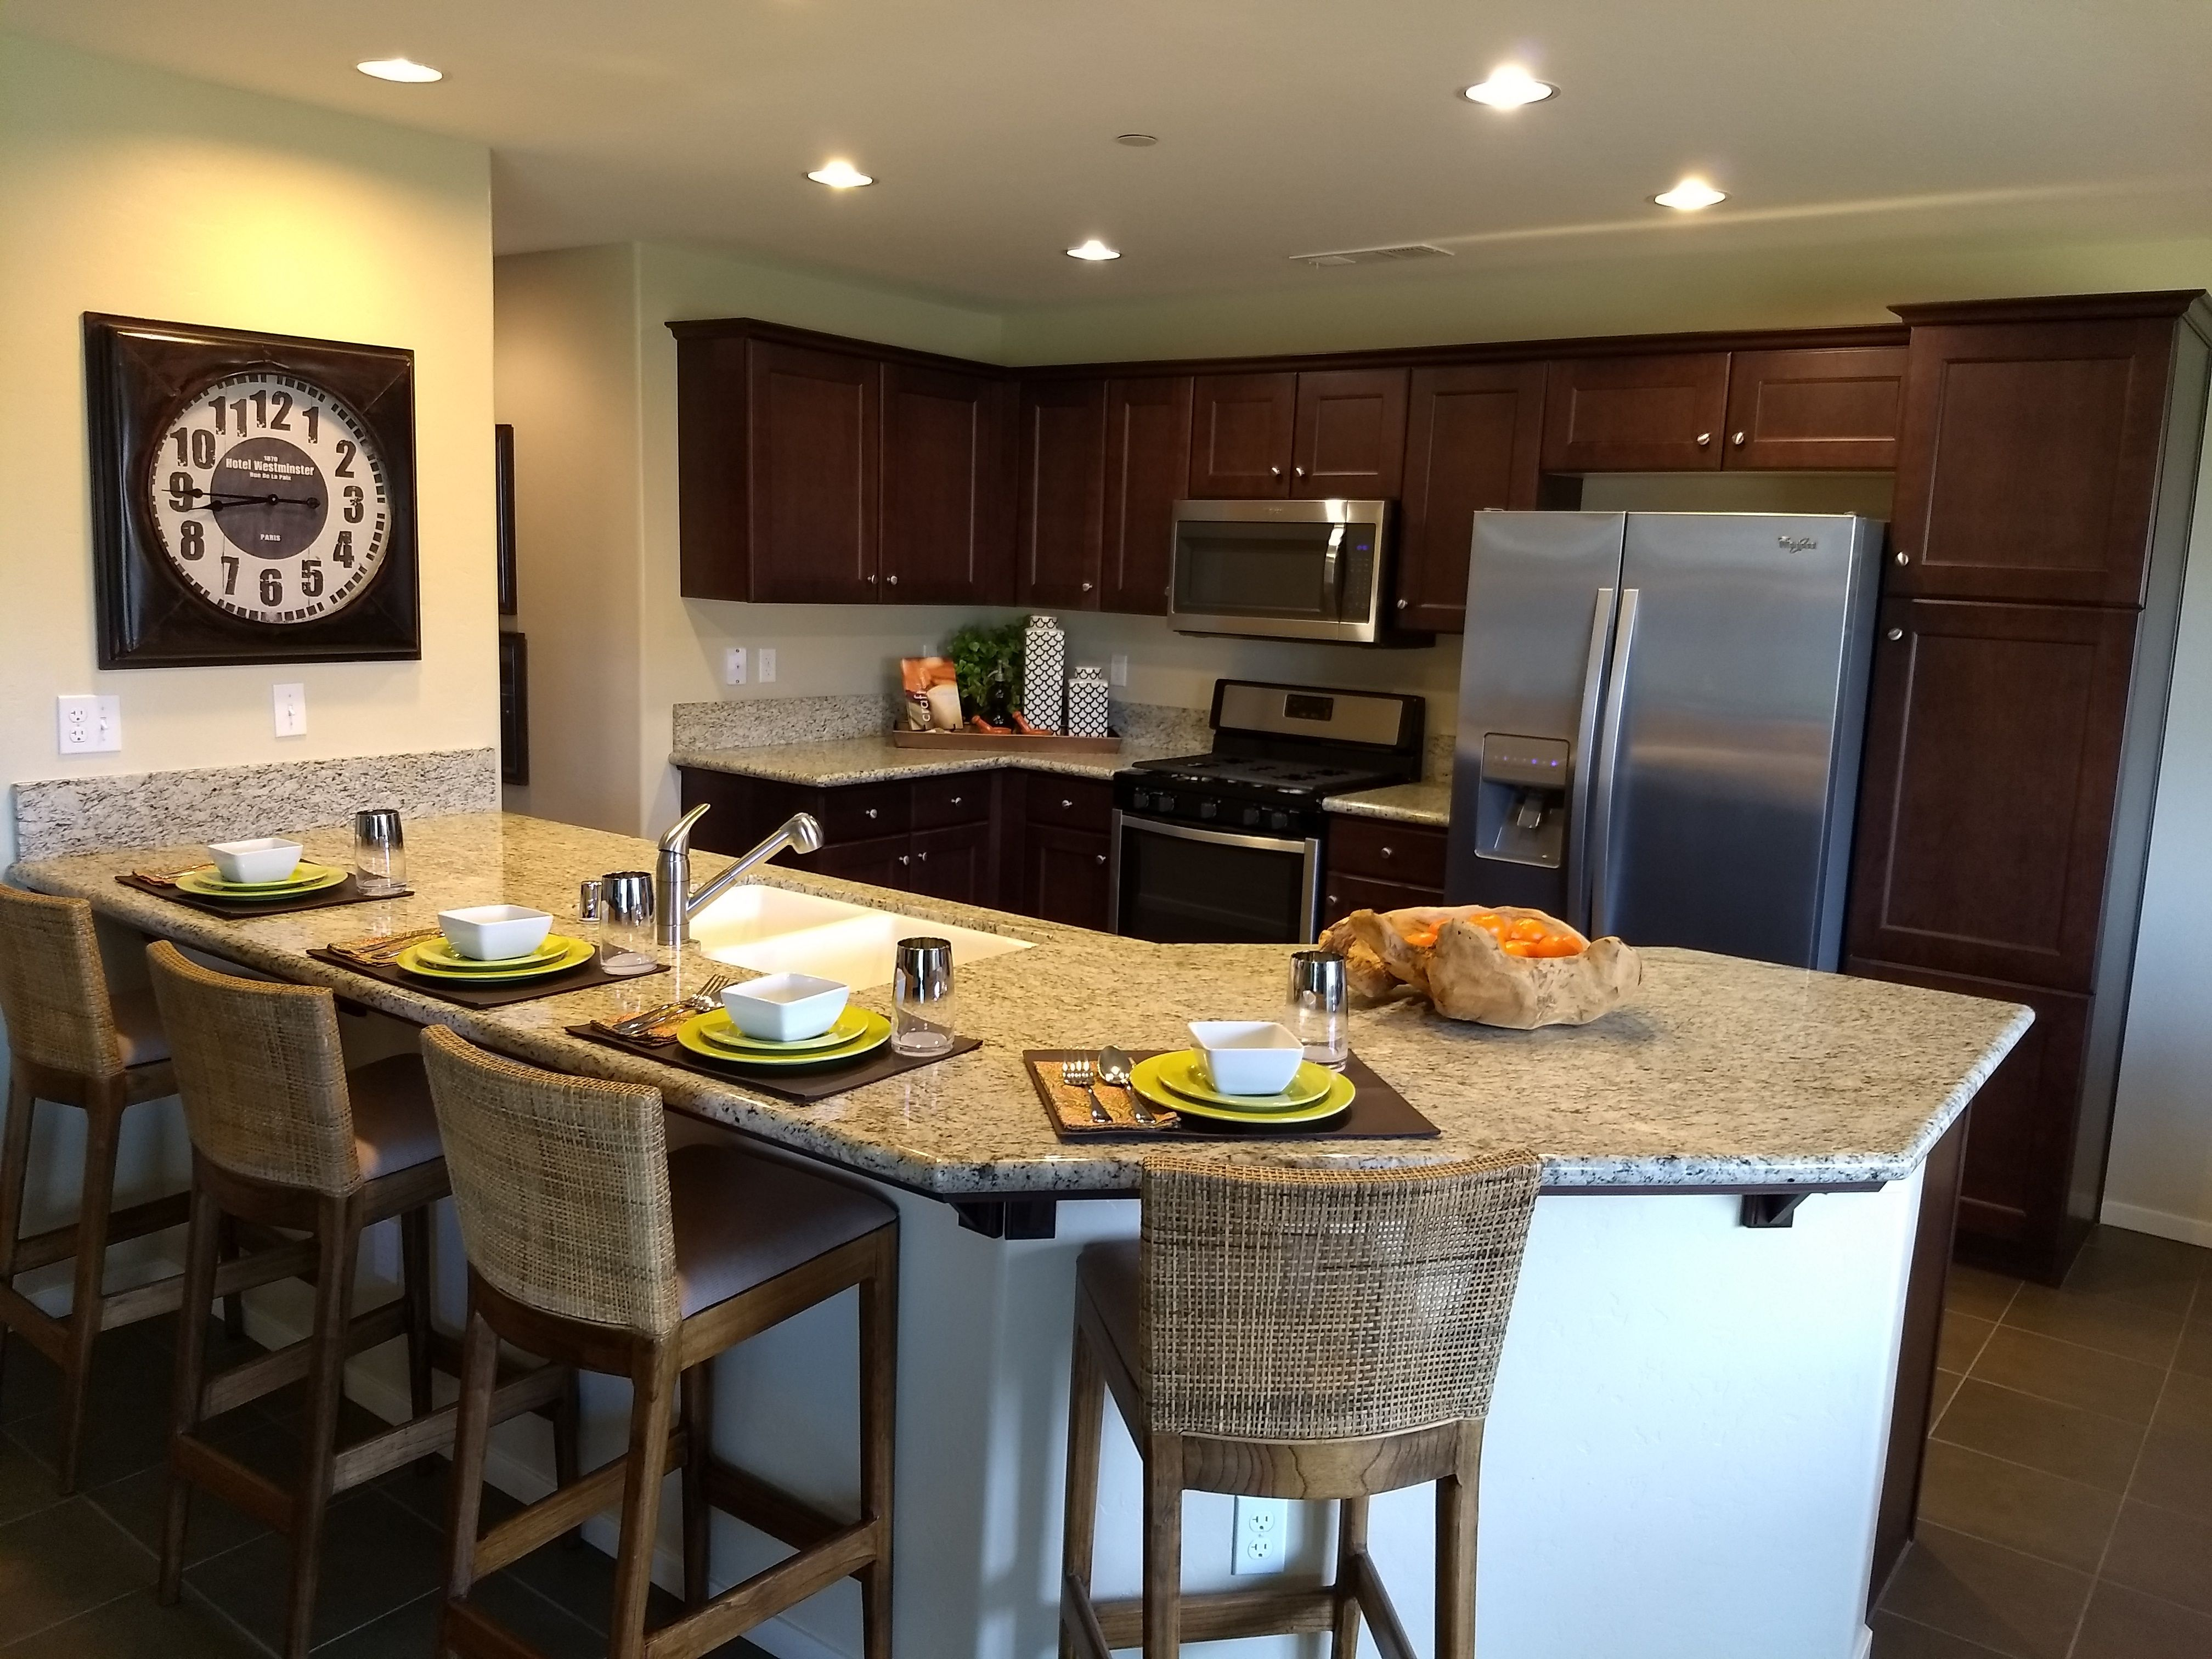 Out Touring New Construction Homes Beautiful Kitchen Designs Contact Us To Review Your Purchasing Options Cottage Realty Richard Carlson